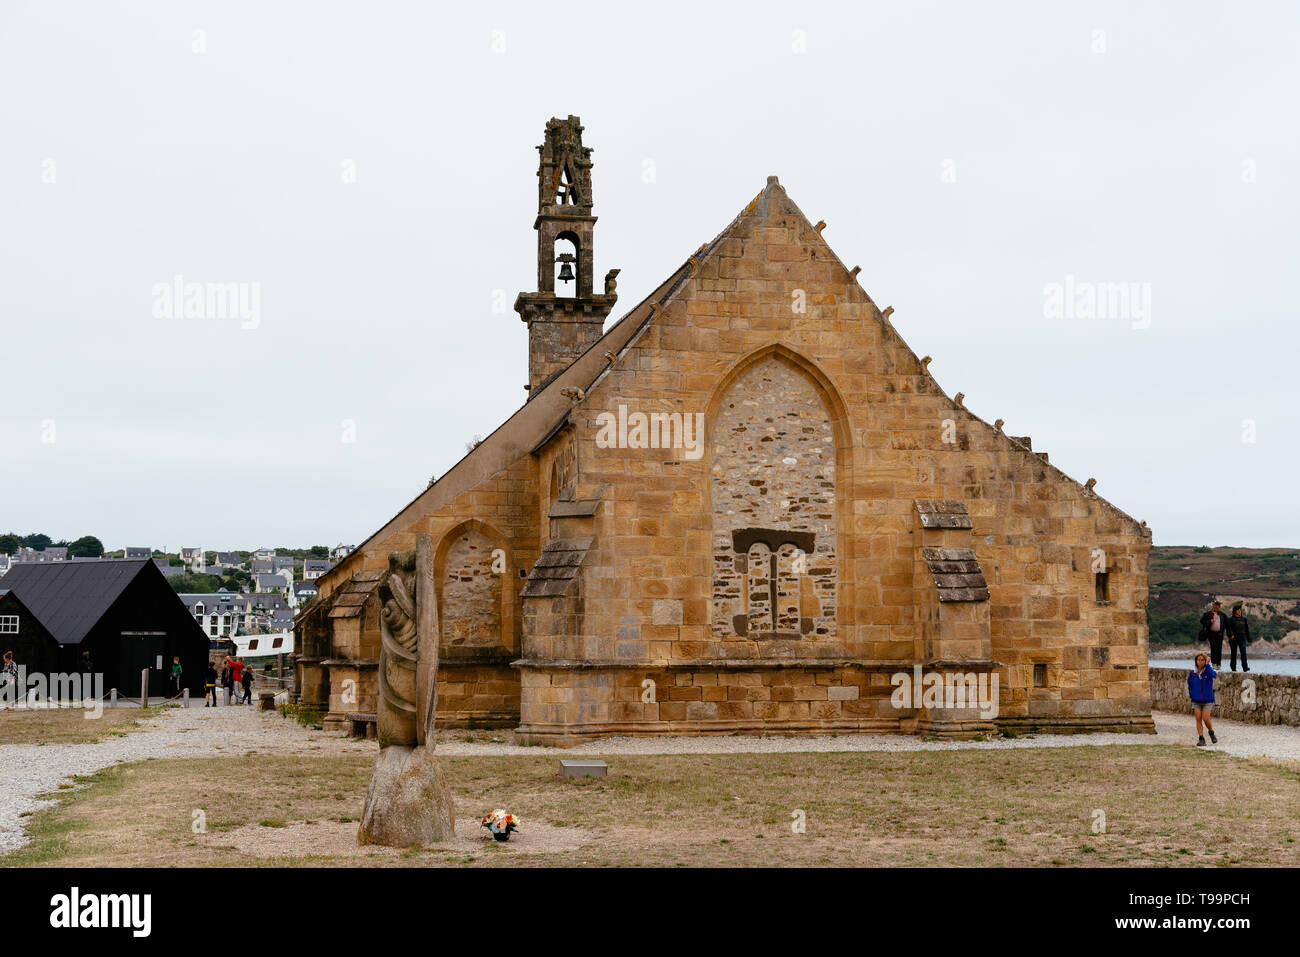 Camaret-sur-Mer, France - August 4, 2018: Outdoor view of the Chapel of Notre-Dame-de-Rocamadour in the port Stock Photo